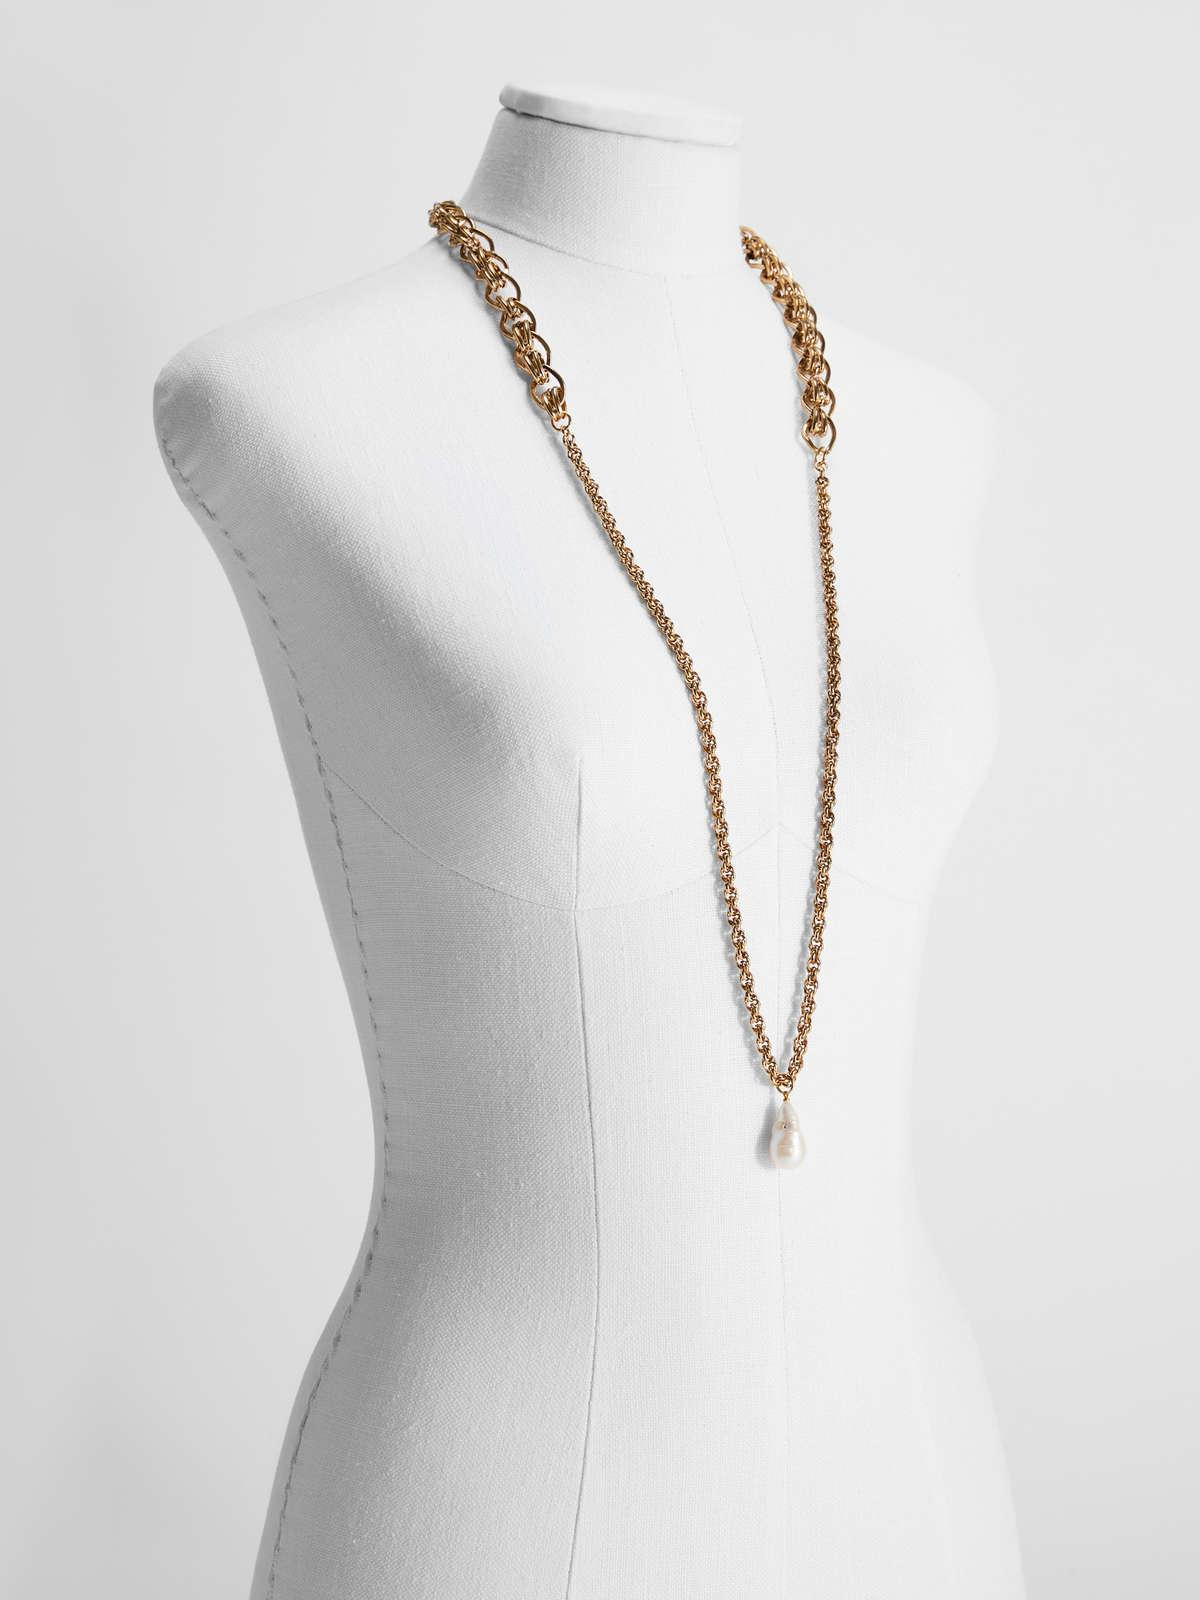 Womens Max Mara Jewelry   Vintage Chain Necklace Gold